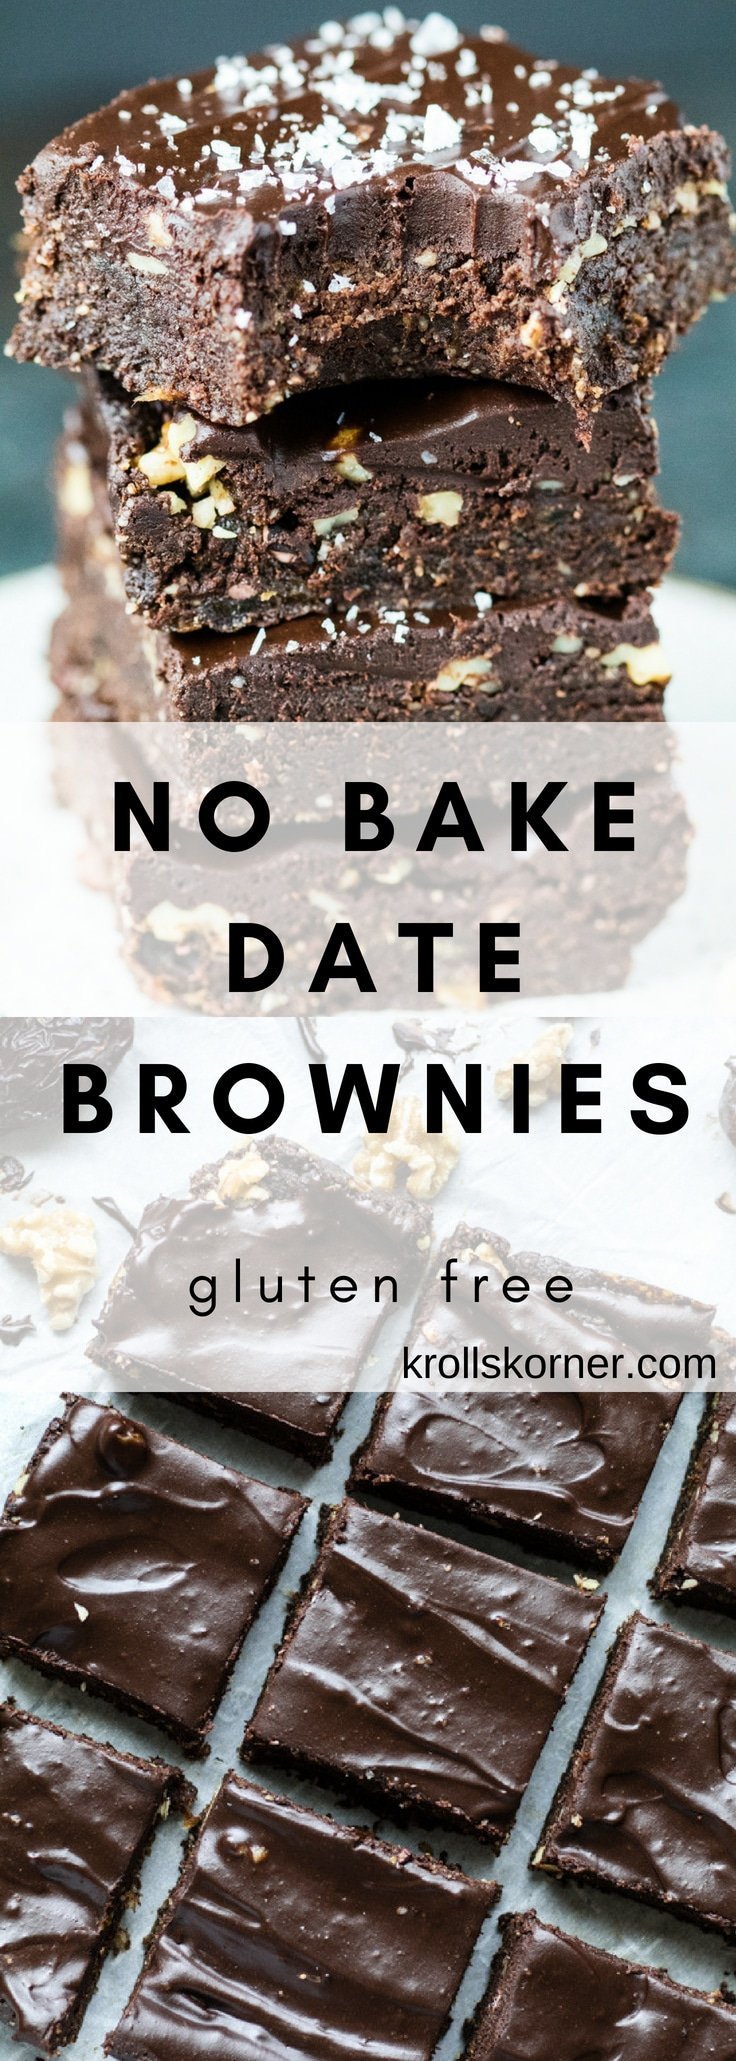 These no-bake brownies are easy to make, contain simple ingredients, are gluten-free, chocolate filled, and the best part? They taste incredible. #krollskorner #brownies #glutenfree #dessert #tasty